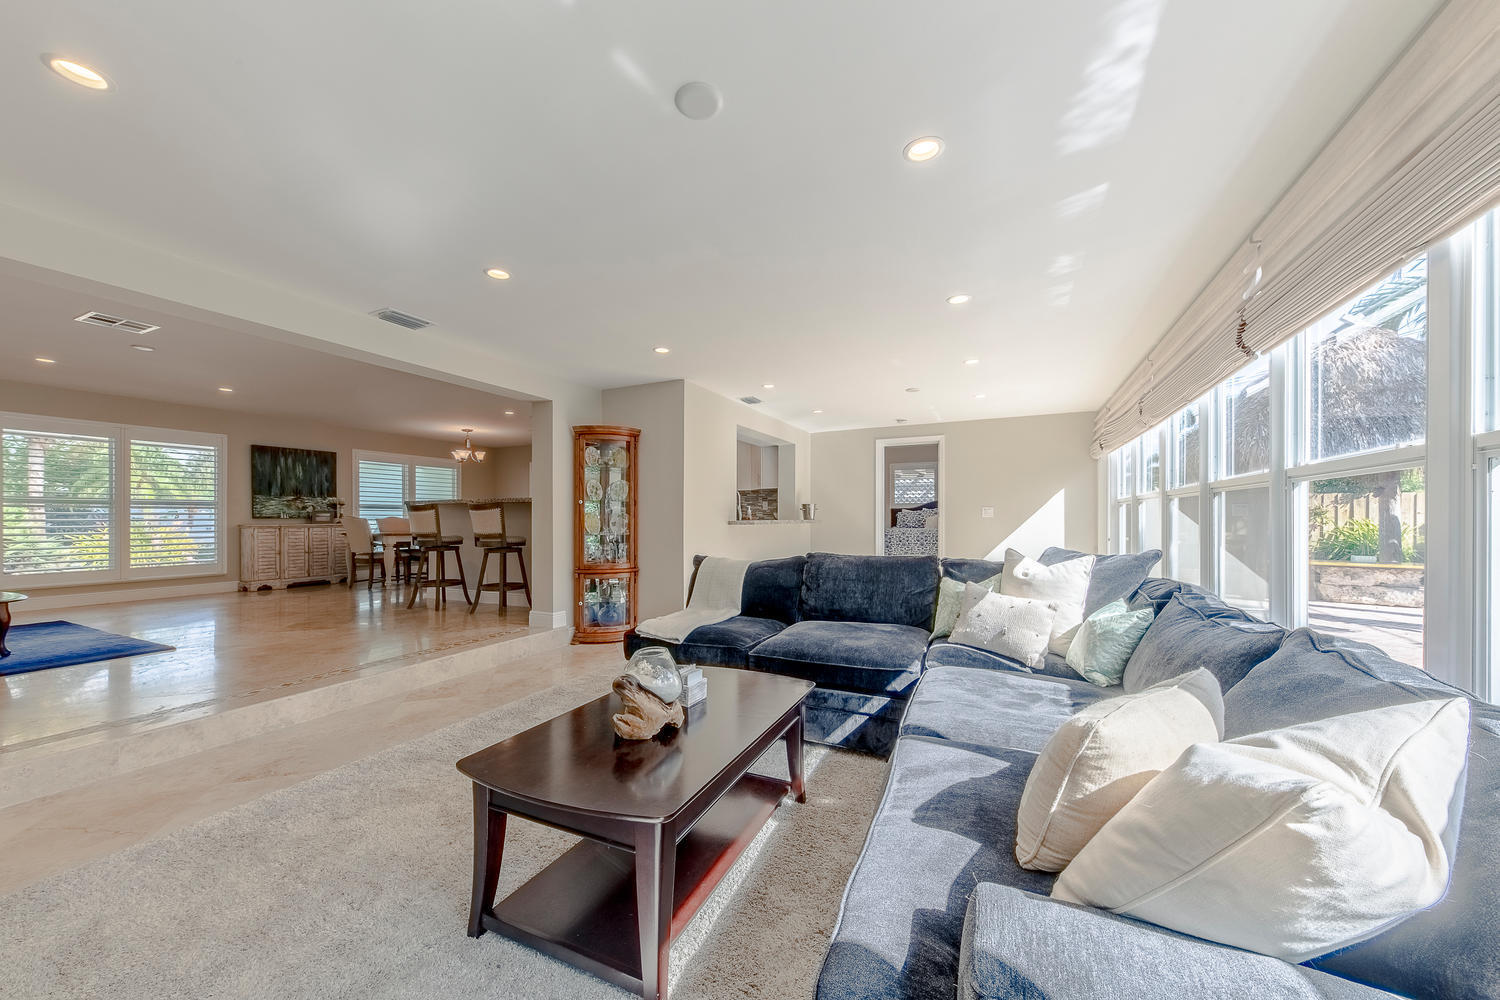 IMPERIAL POINT FORT LAUDERDALE REAL ESTATE